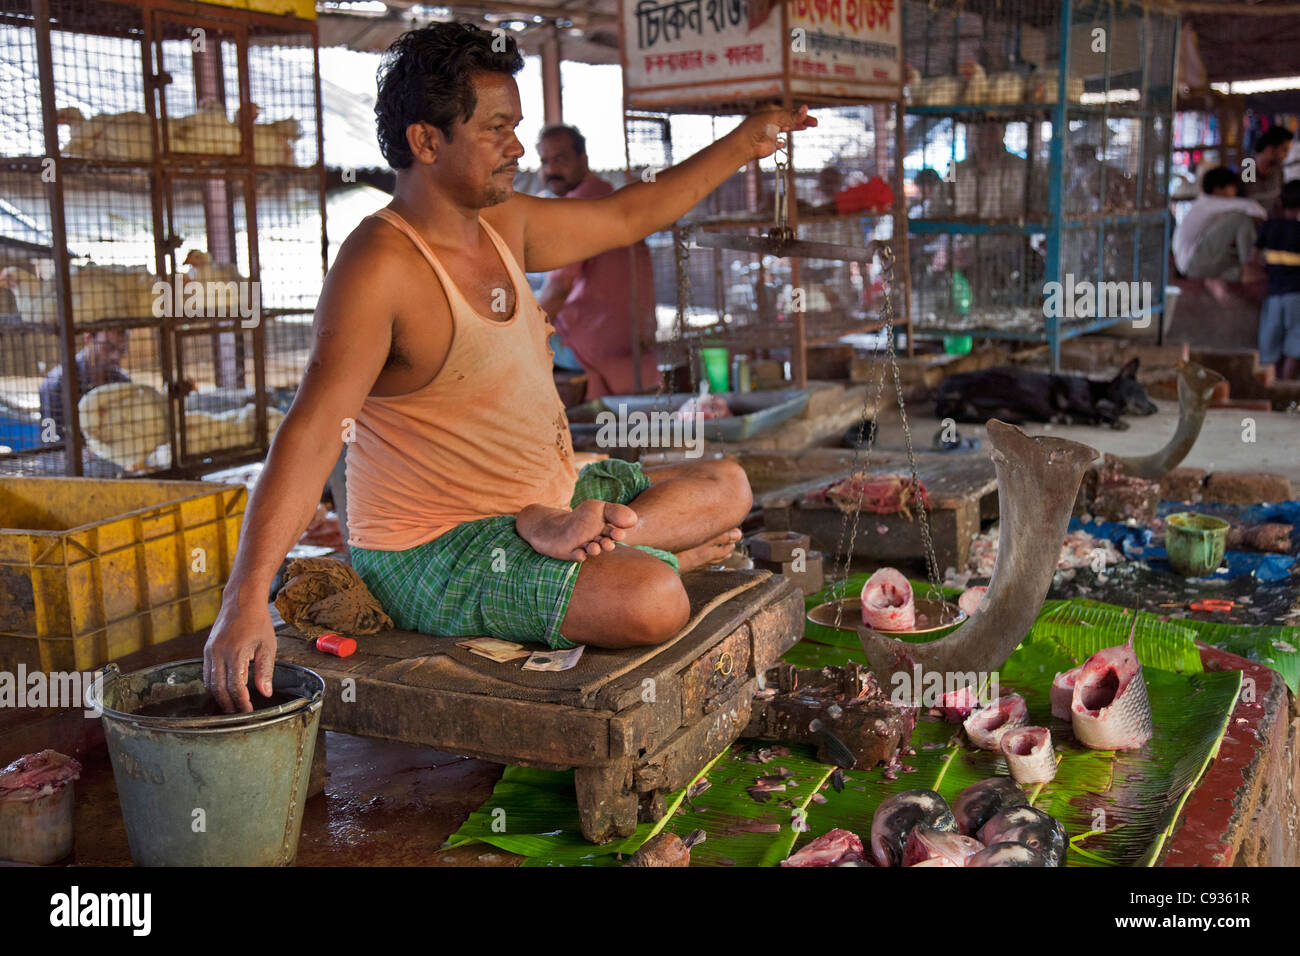 A fishmonger weighs a fish steak in Kalna market.  All the fish are caught in the nearby Hooghly River. - Stock Image